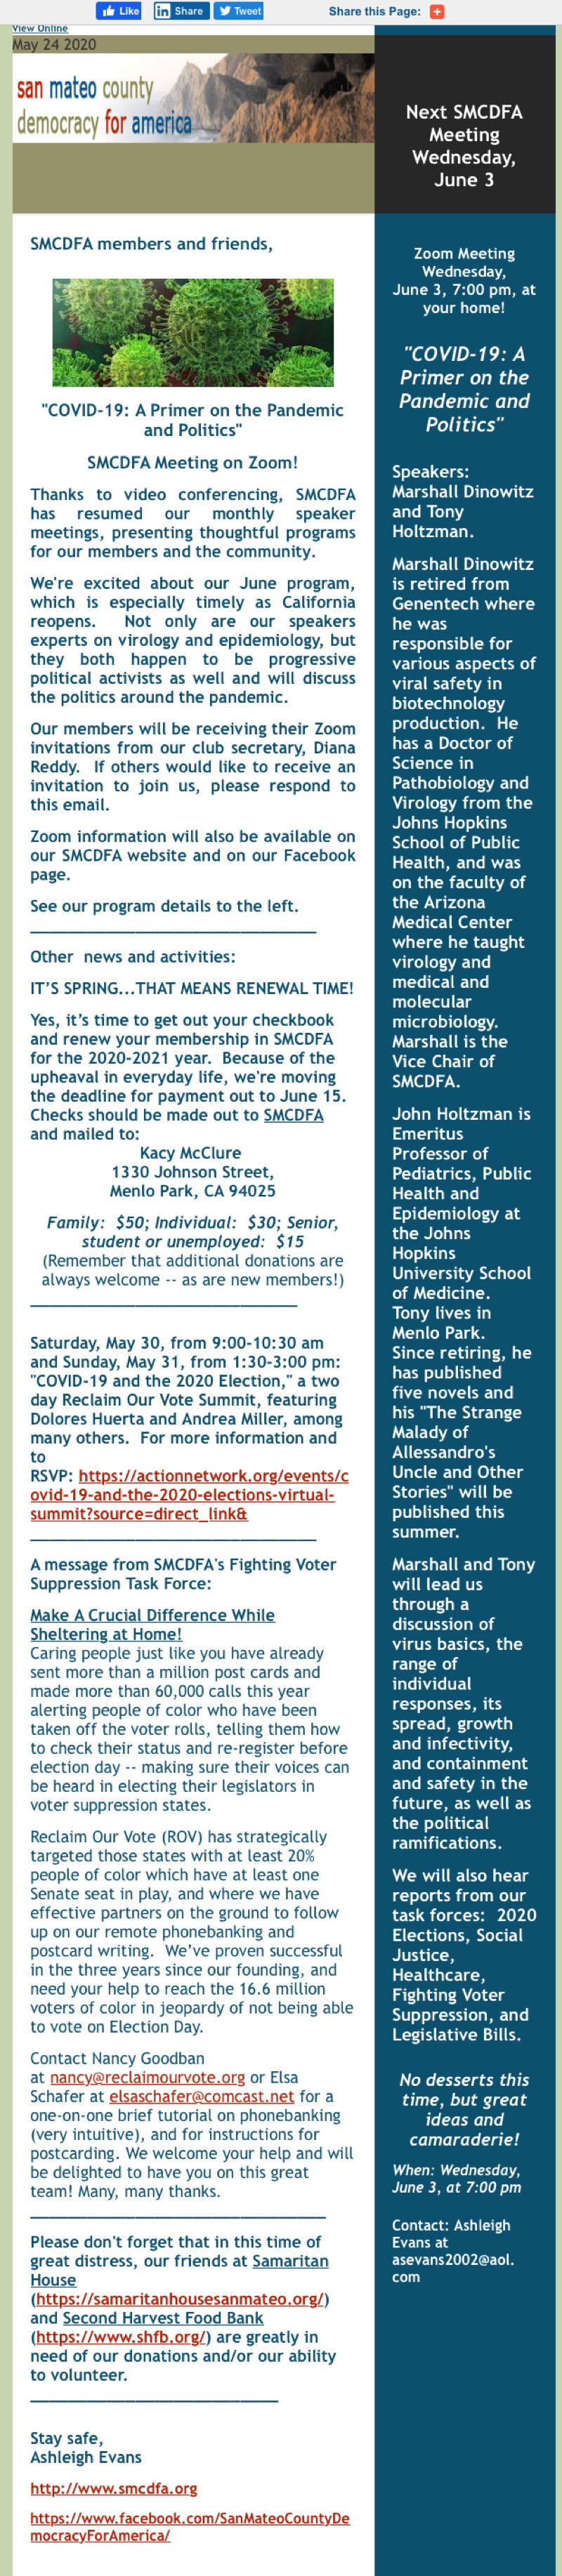 SMCDFA_Mayupdated_2020_Newsletter.jpg